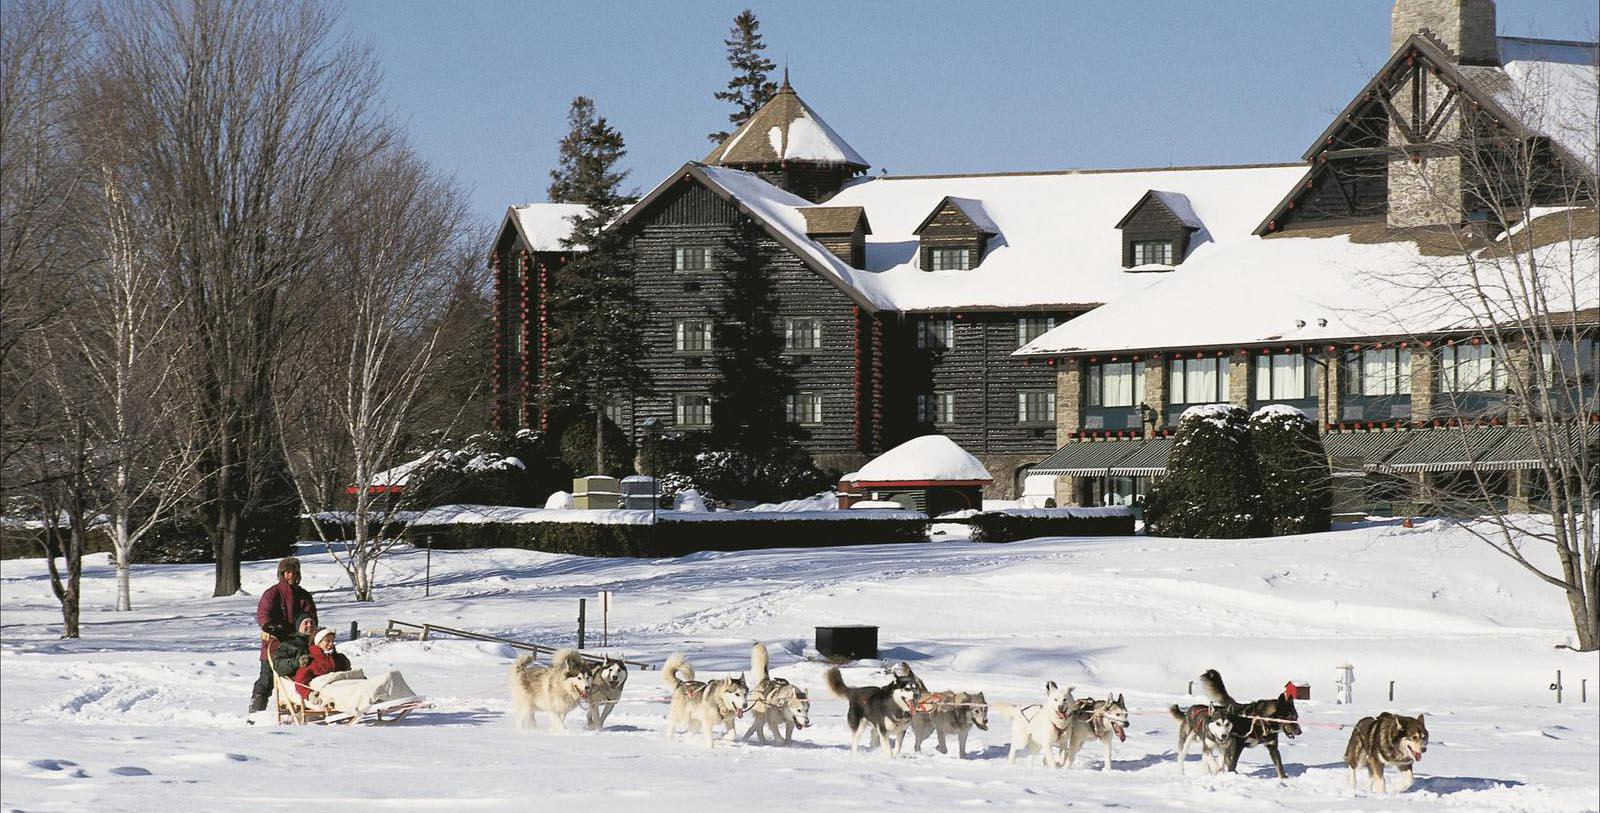 Image of Hotel Exterior with Guests Dogsledding Fairmont Le Château Montebello, 1930, Member of Historic Hotels Worldwide, in Montebello, Quebec, Special Offers, Discounted Rates, Families, Romantic Escape, Honeymoons, Anniversaries, Reunions